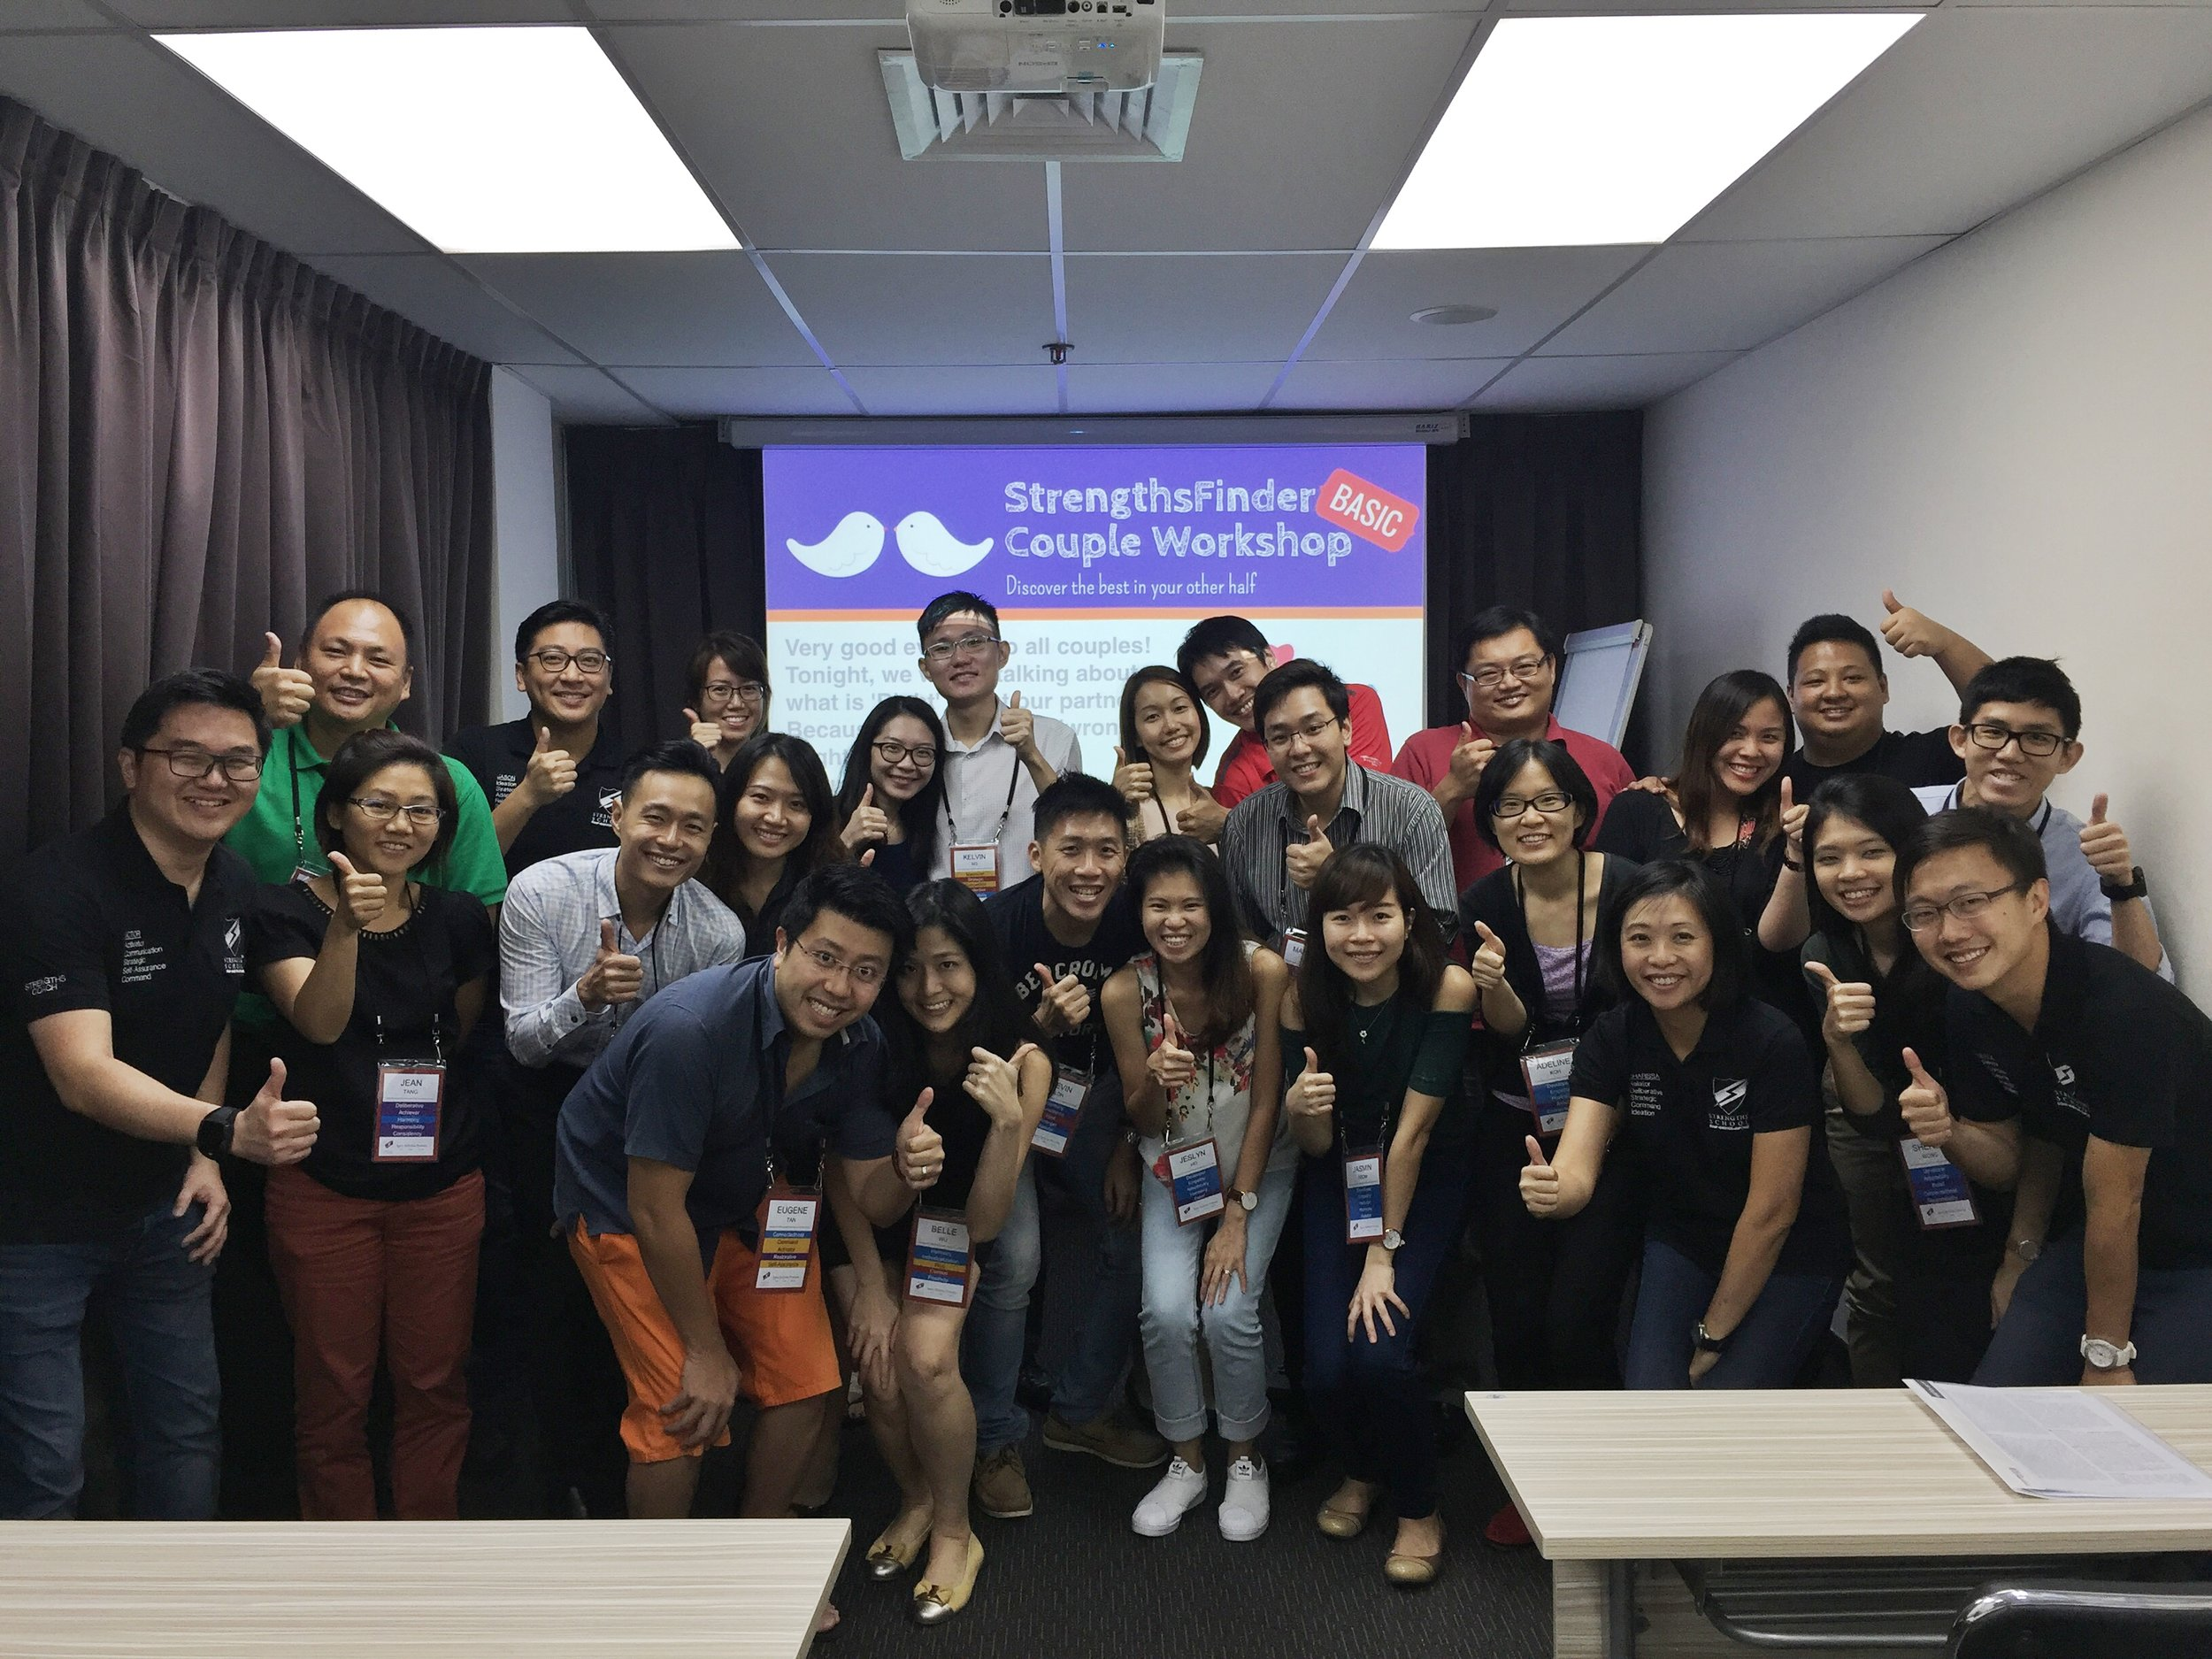 StrengthsFinder Singapore Couple Workshop Strengths School Group Photo.jpg